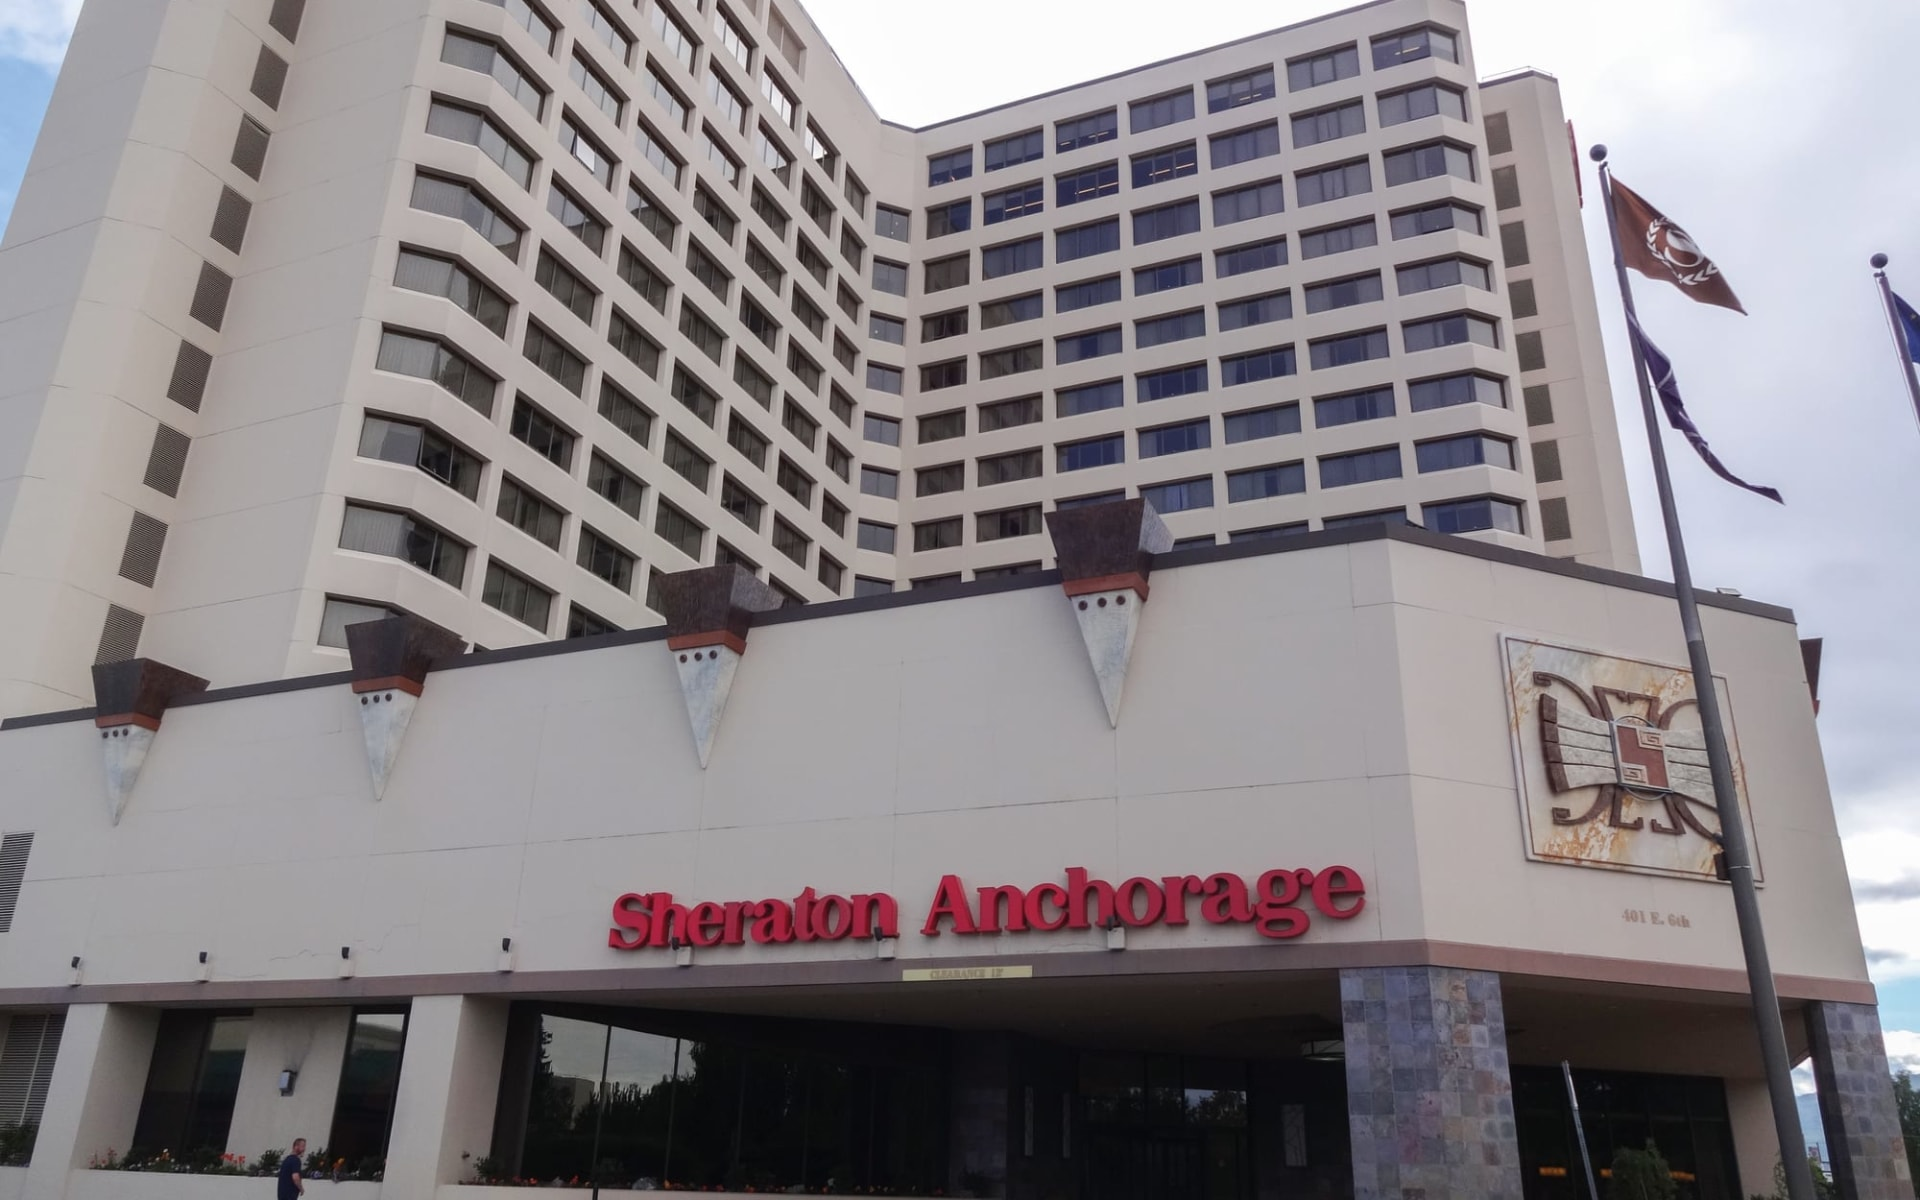 Sheraton Anchorage: Sheraton Anchorage_Frontansicht_GoNorth